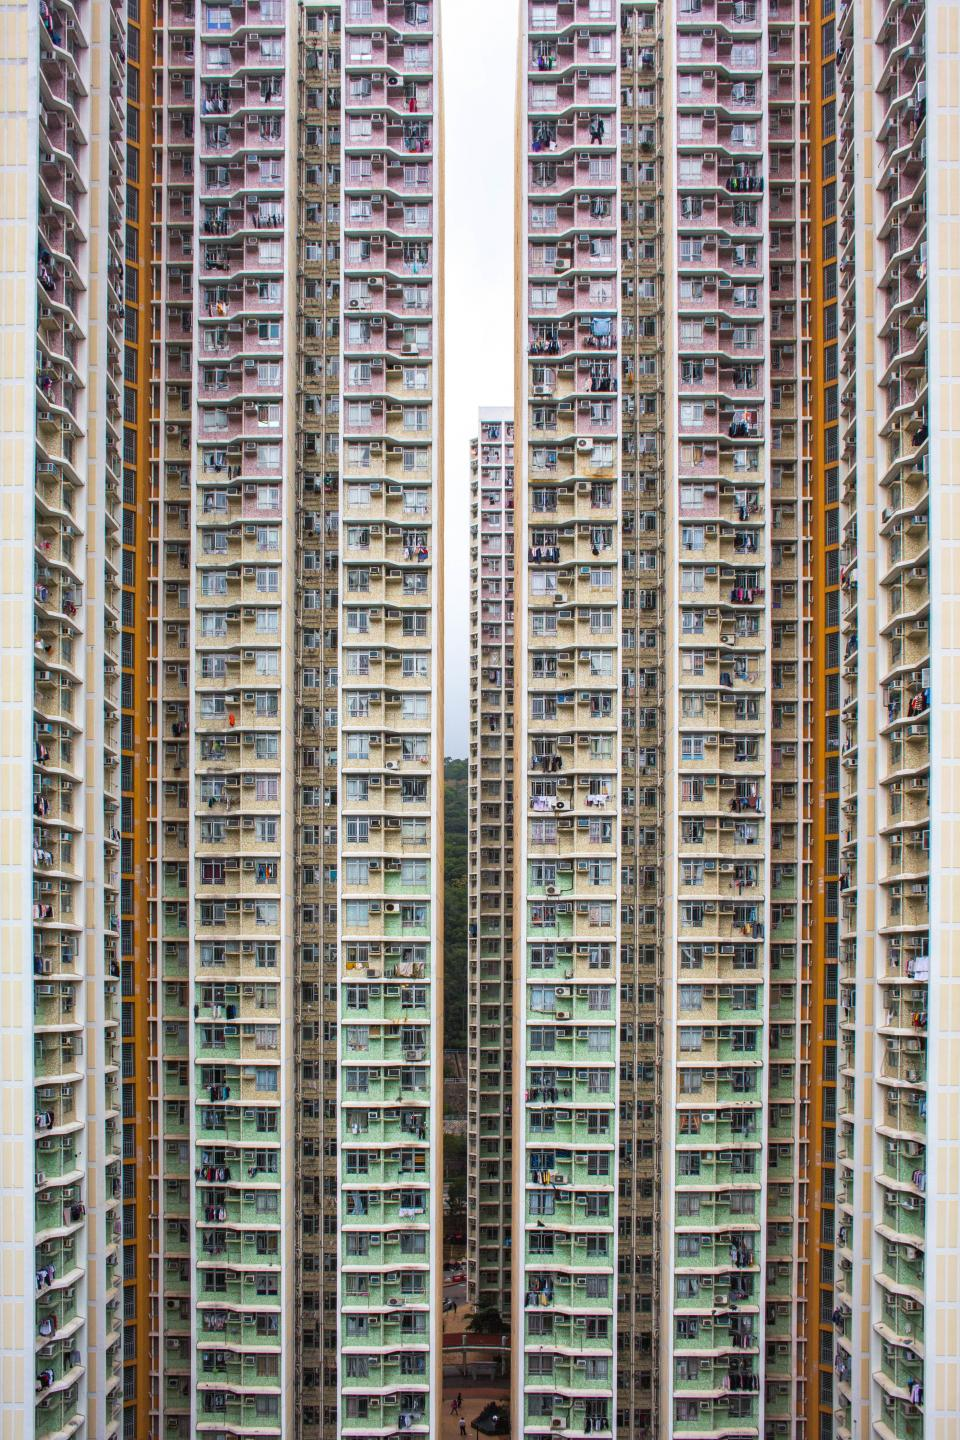 architecture buildings city residential condominium tenement high rise patterns perspective